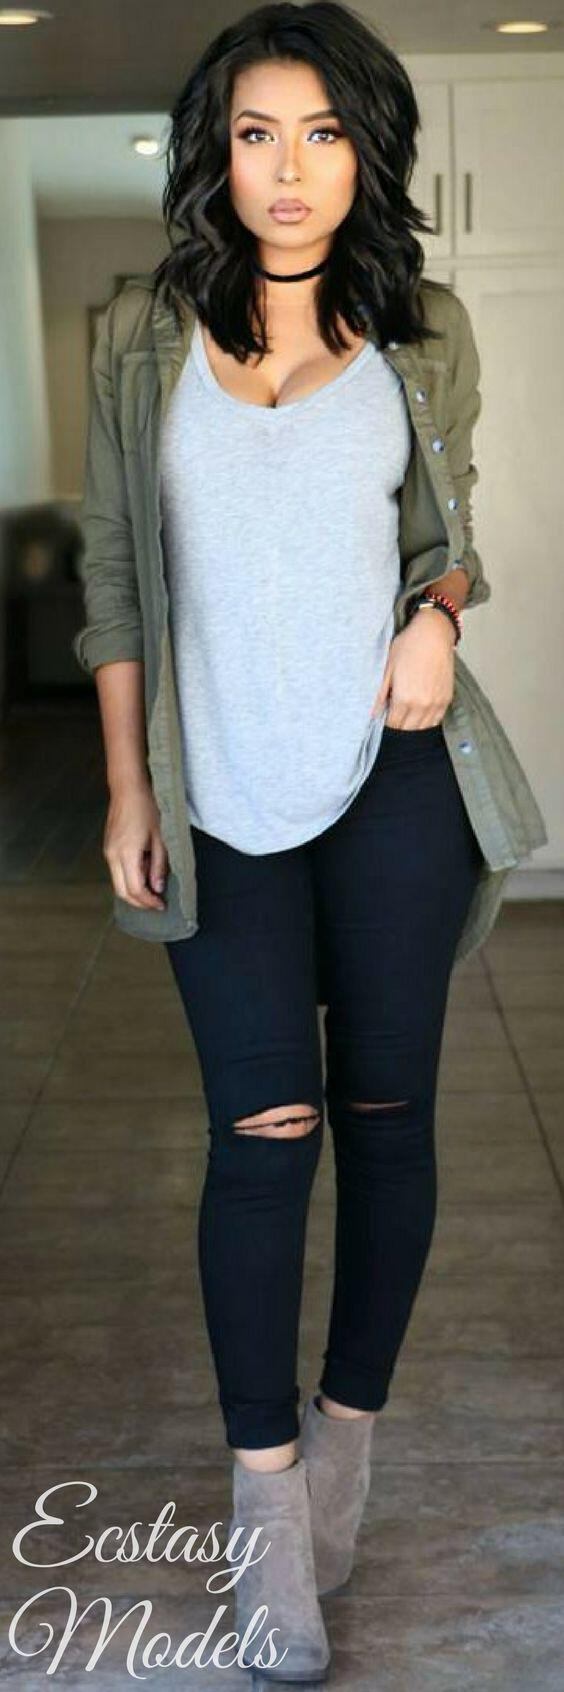 14 stylish ways to wear ankle boots in casual spring outfits 1 - 14 stylish ways to wear ankle boots in casual spring outfits